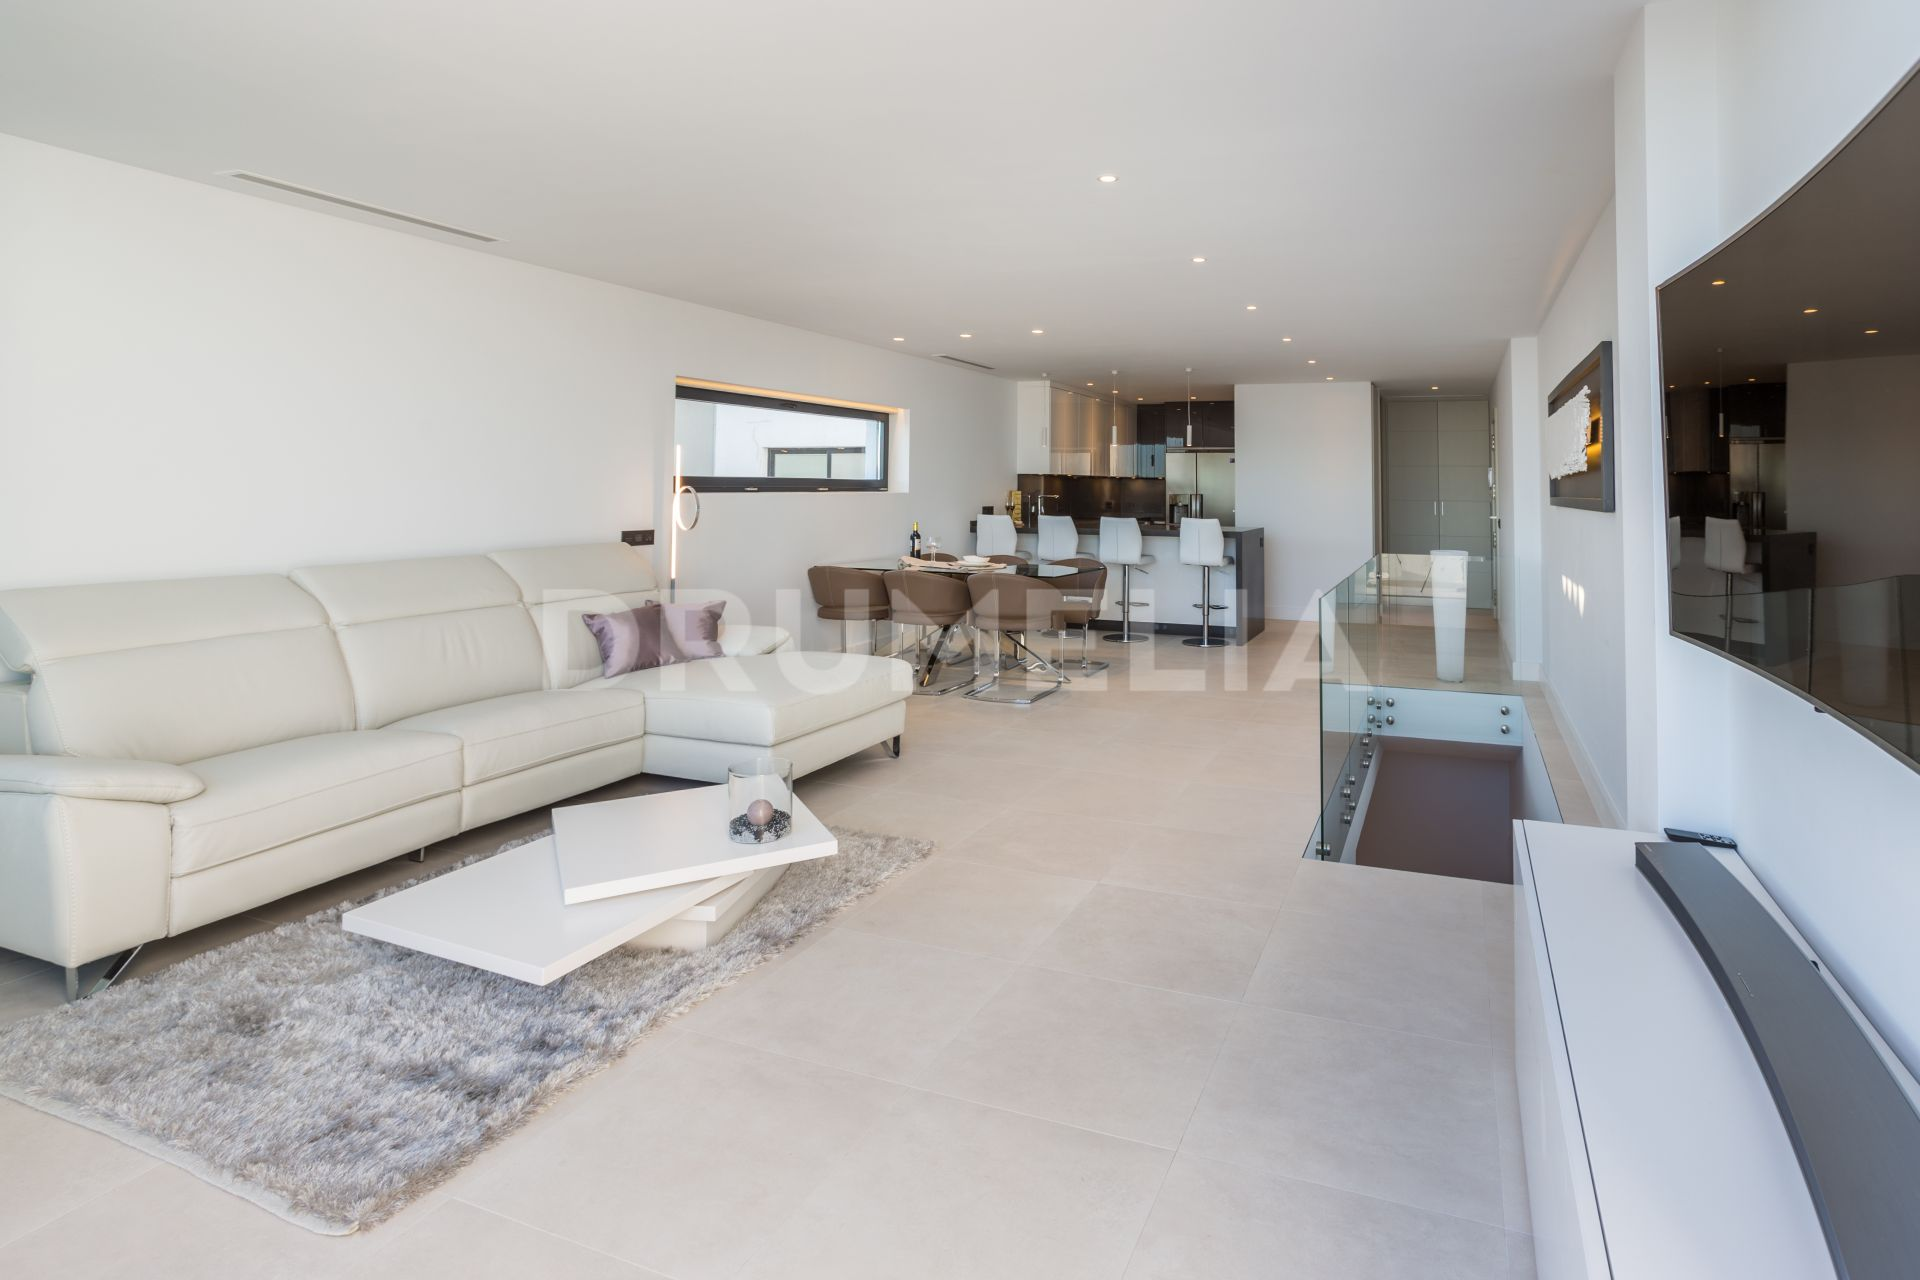 Marbella - Puerto Banus, Unique High-end Contemporary Duplex Penthouse, Marbella - Puerto Banus